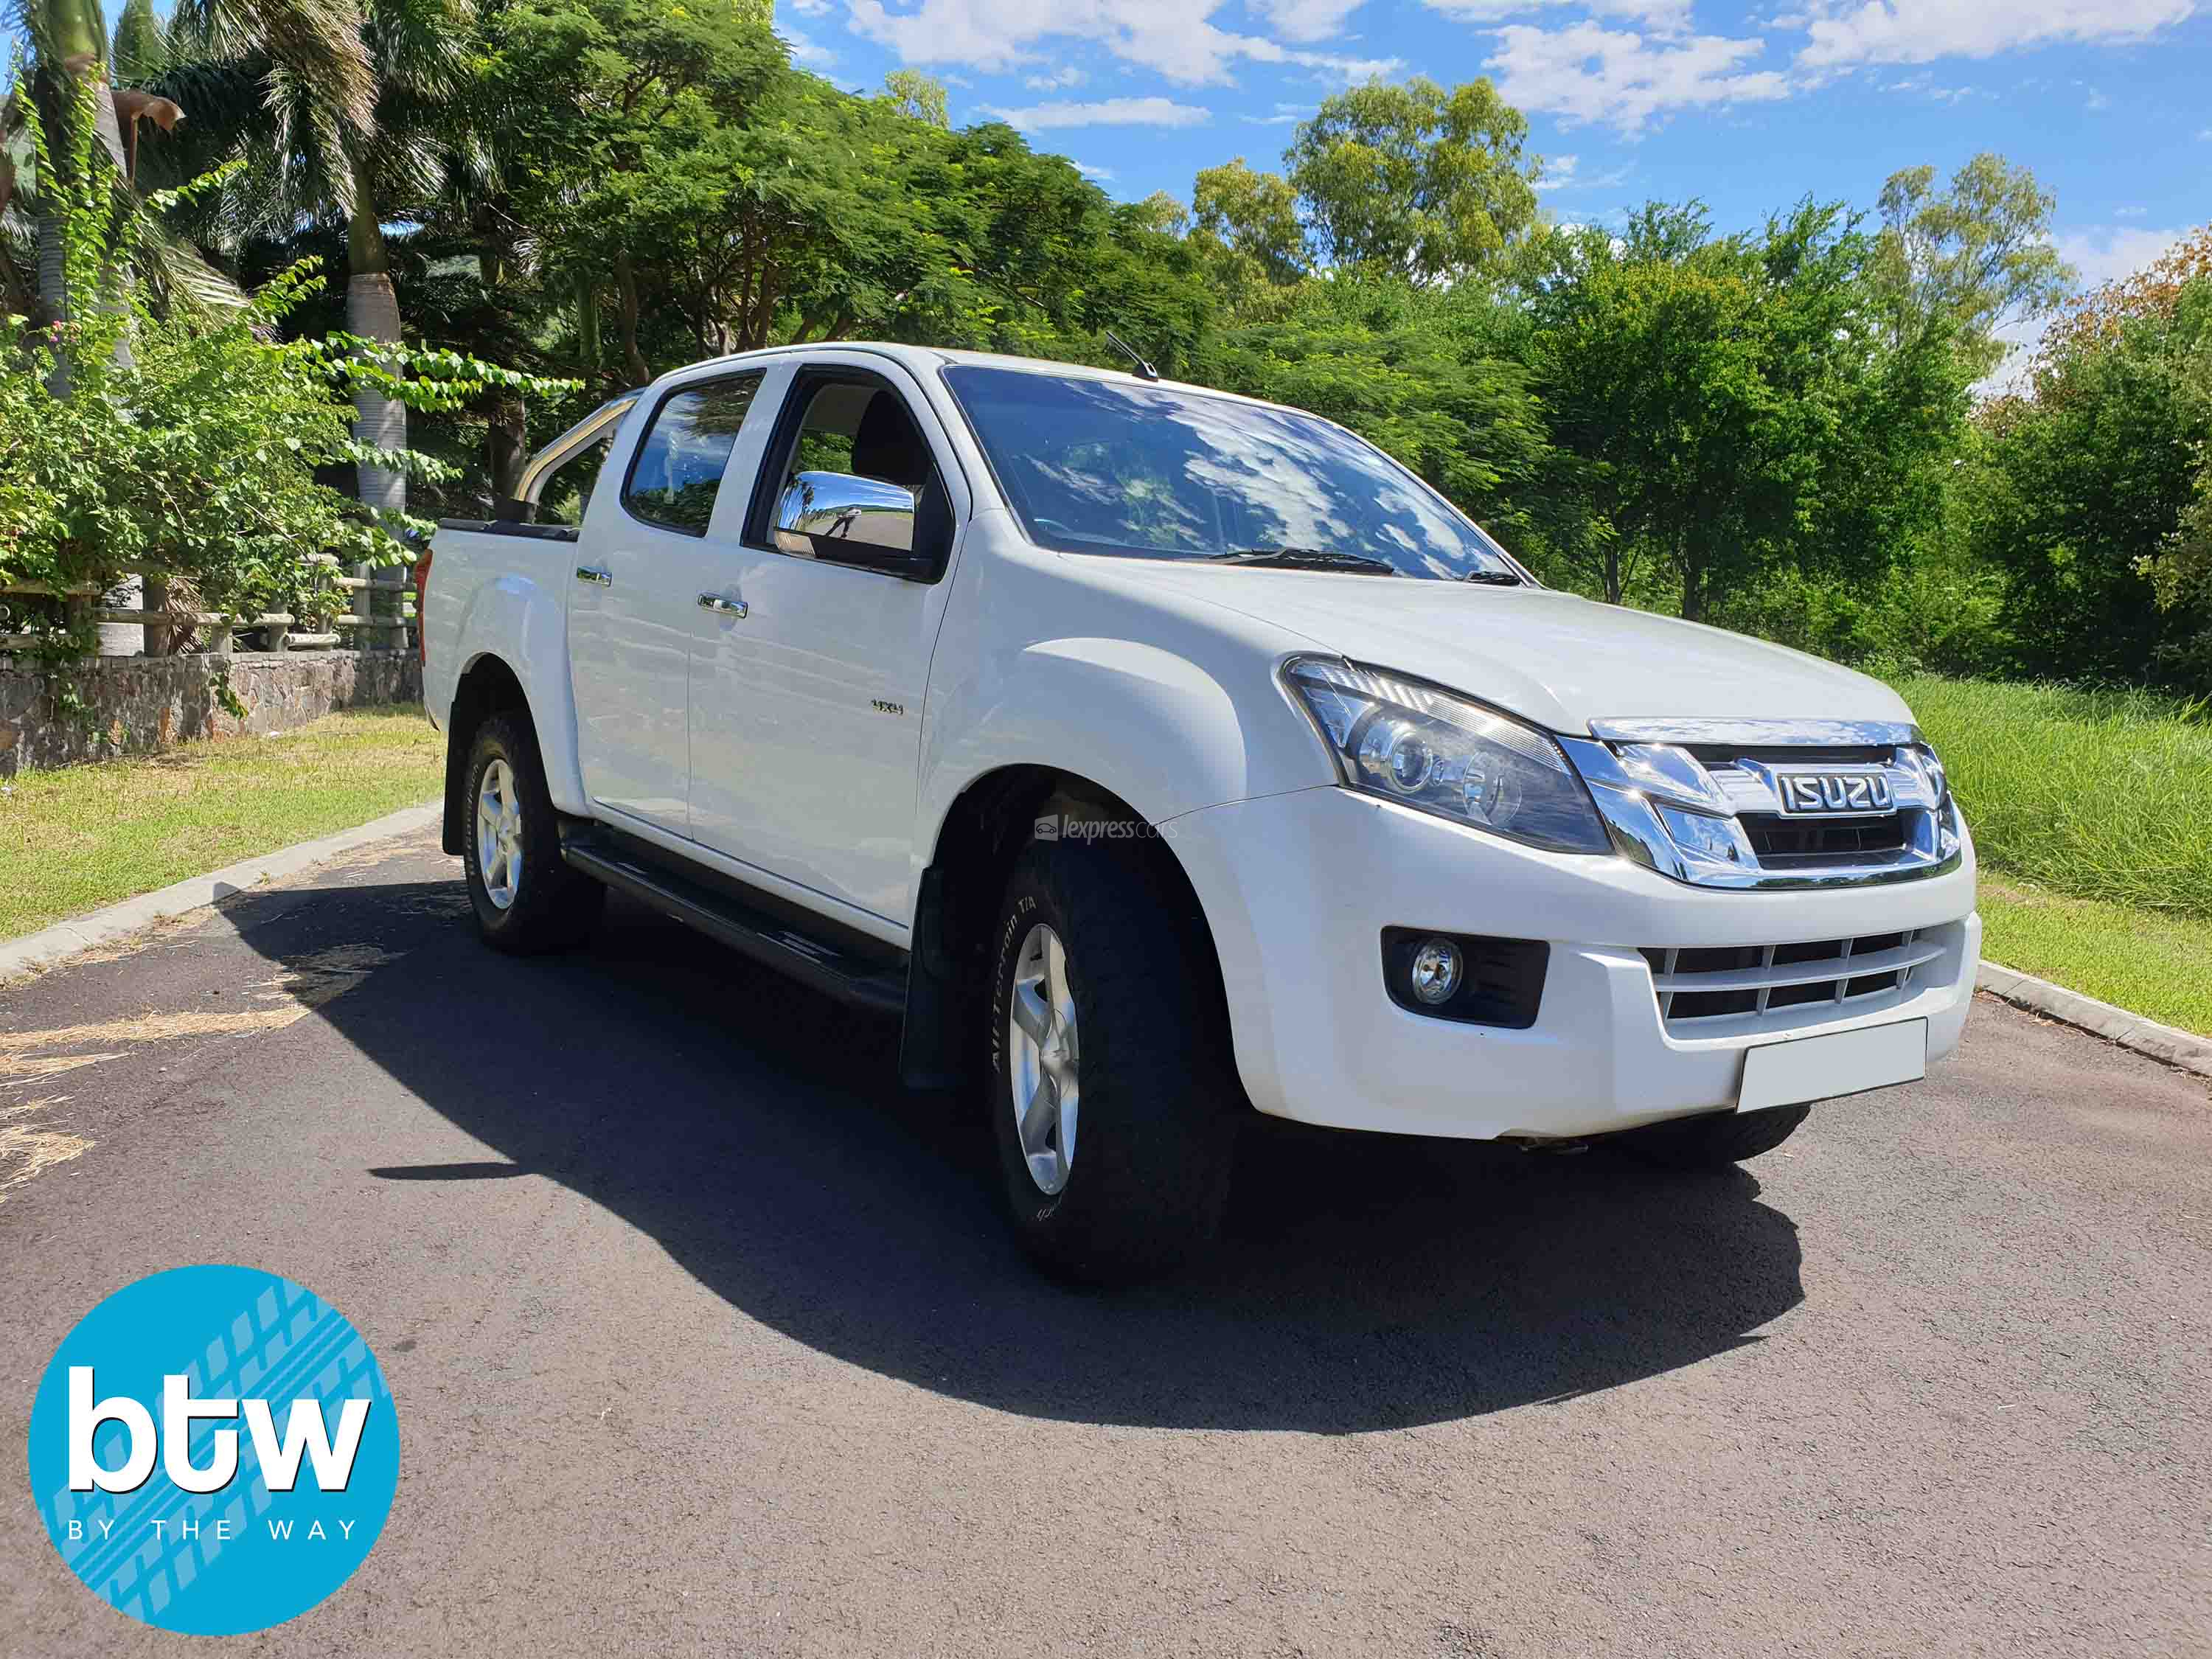 dealership second hand isuzu dmax 2016 - lexpresscars.mu